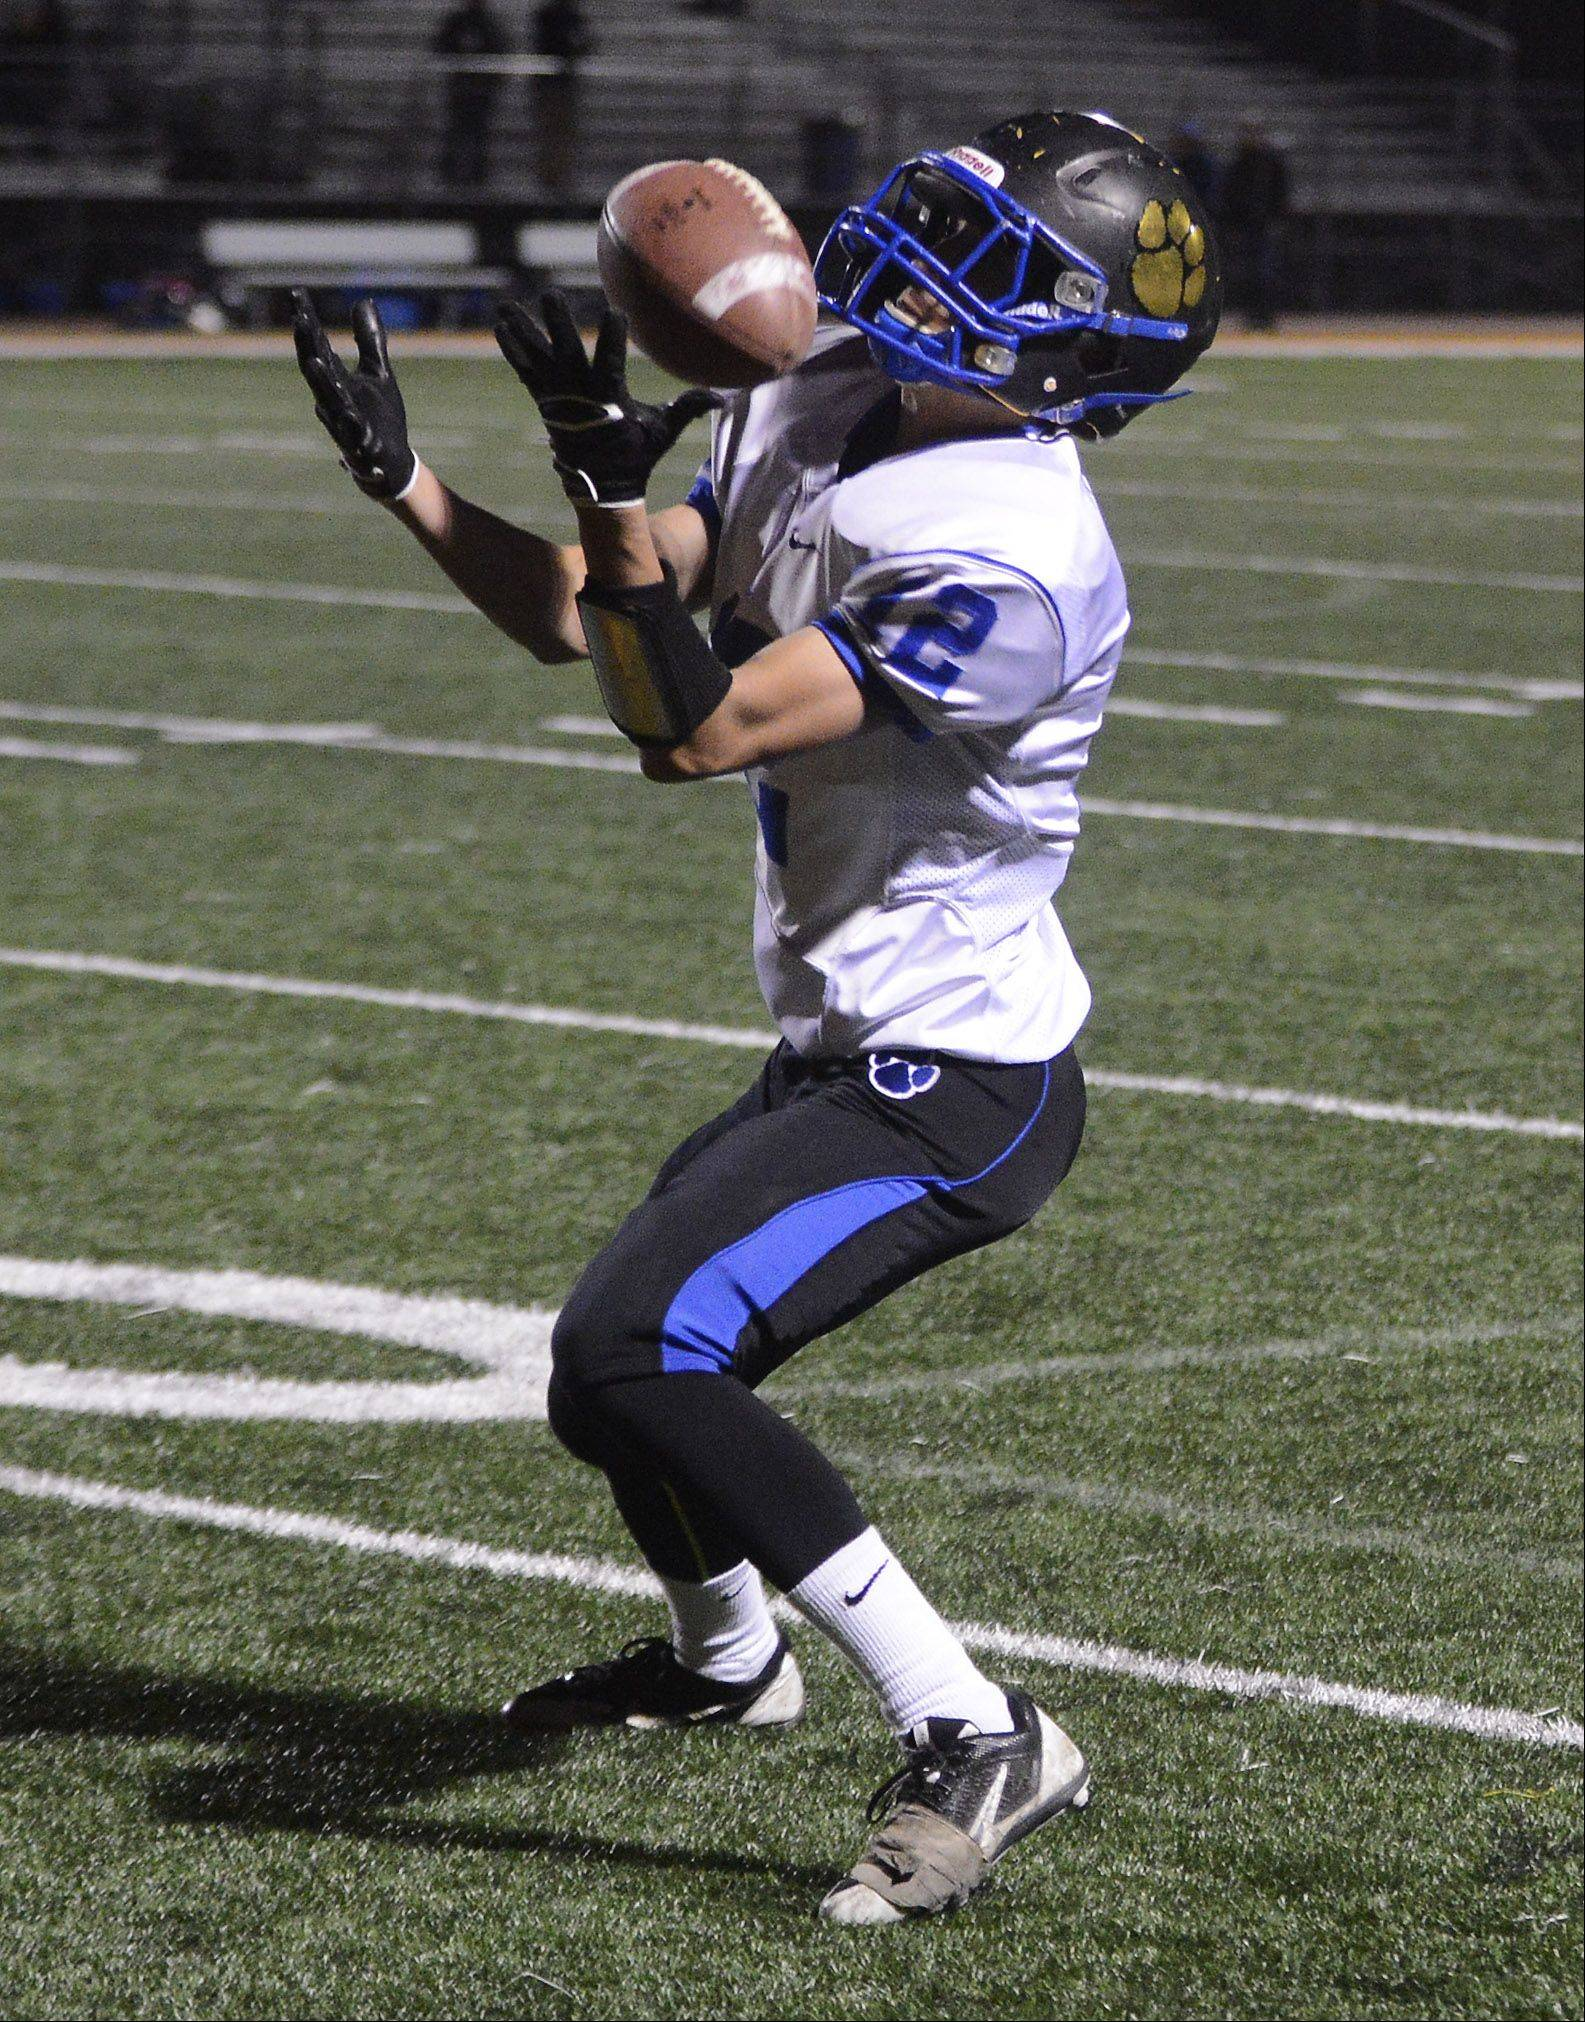 Wheeling's Max Chung collects a pass that bounced off his body.